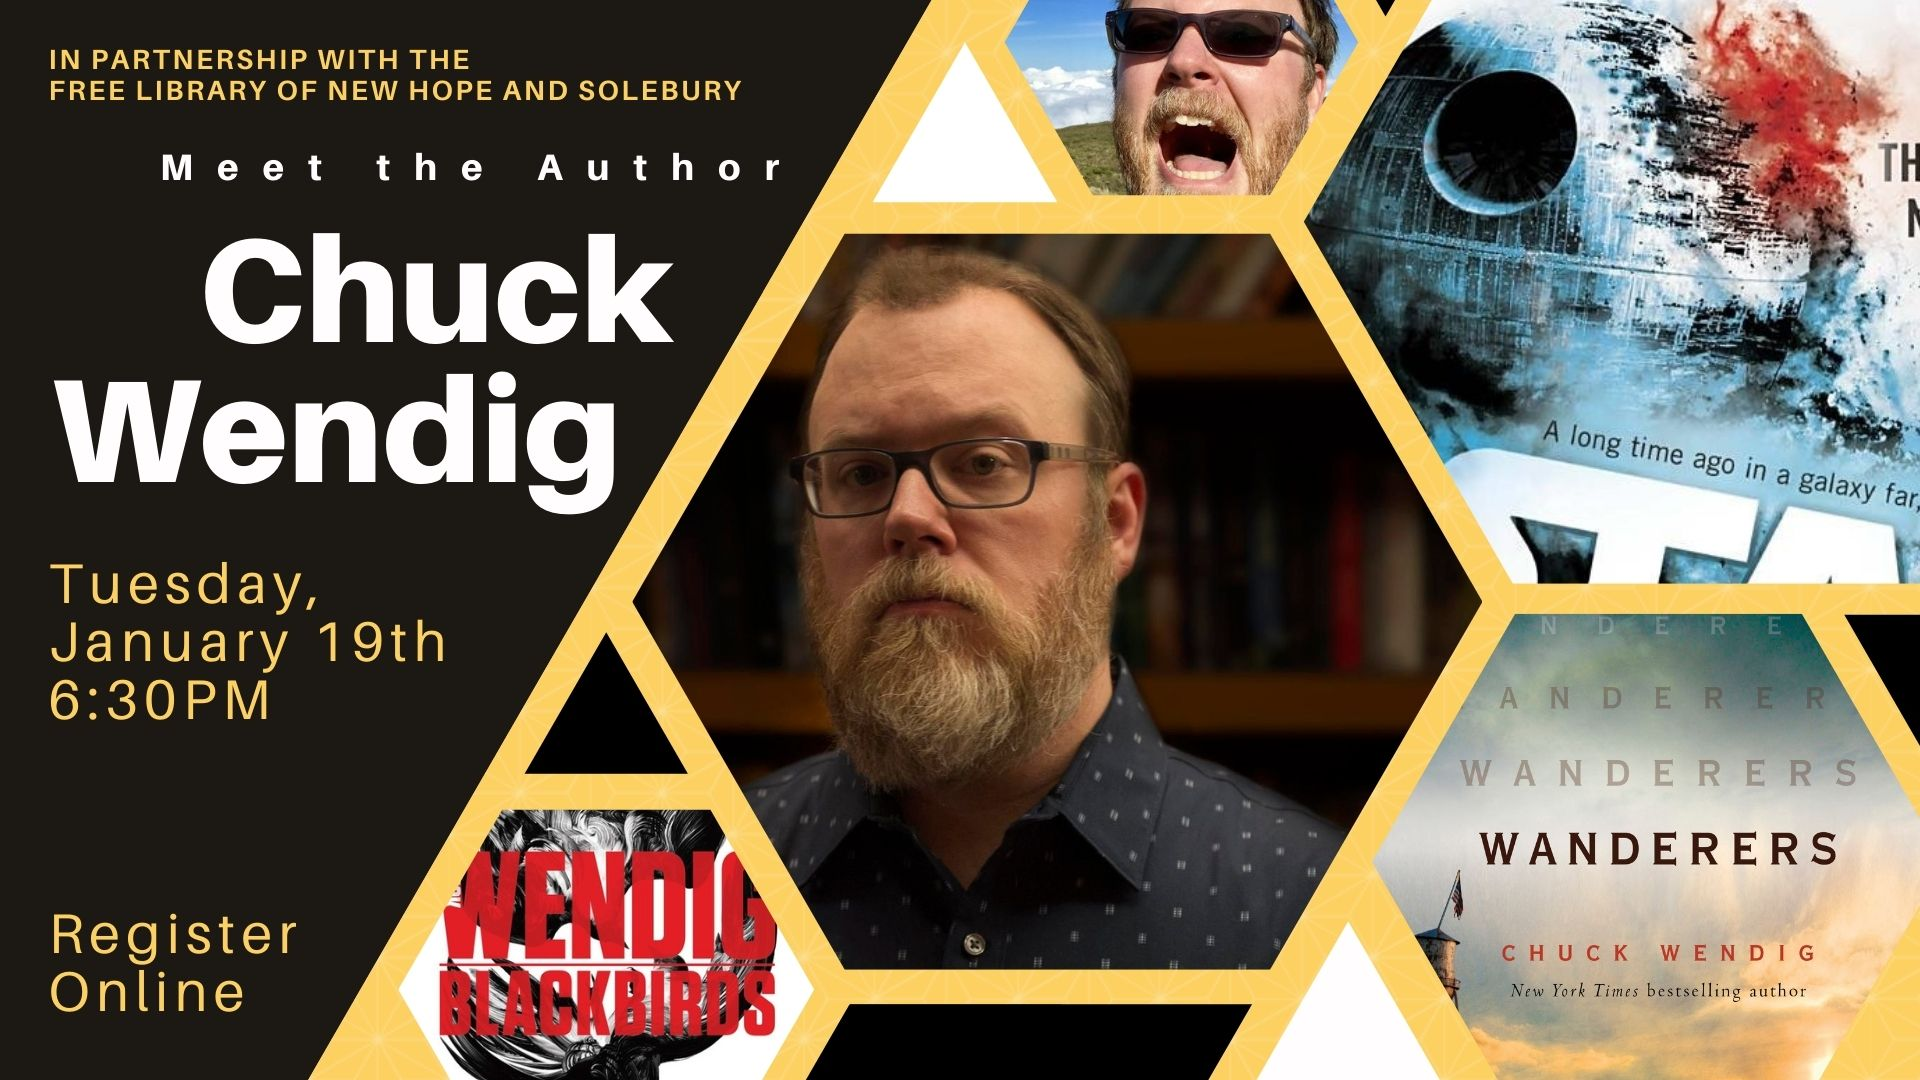 Meet the Author: Chuck Wendig